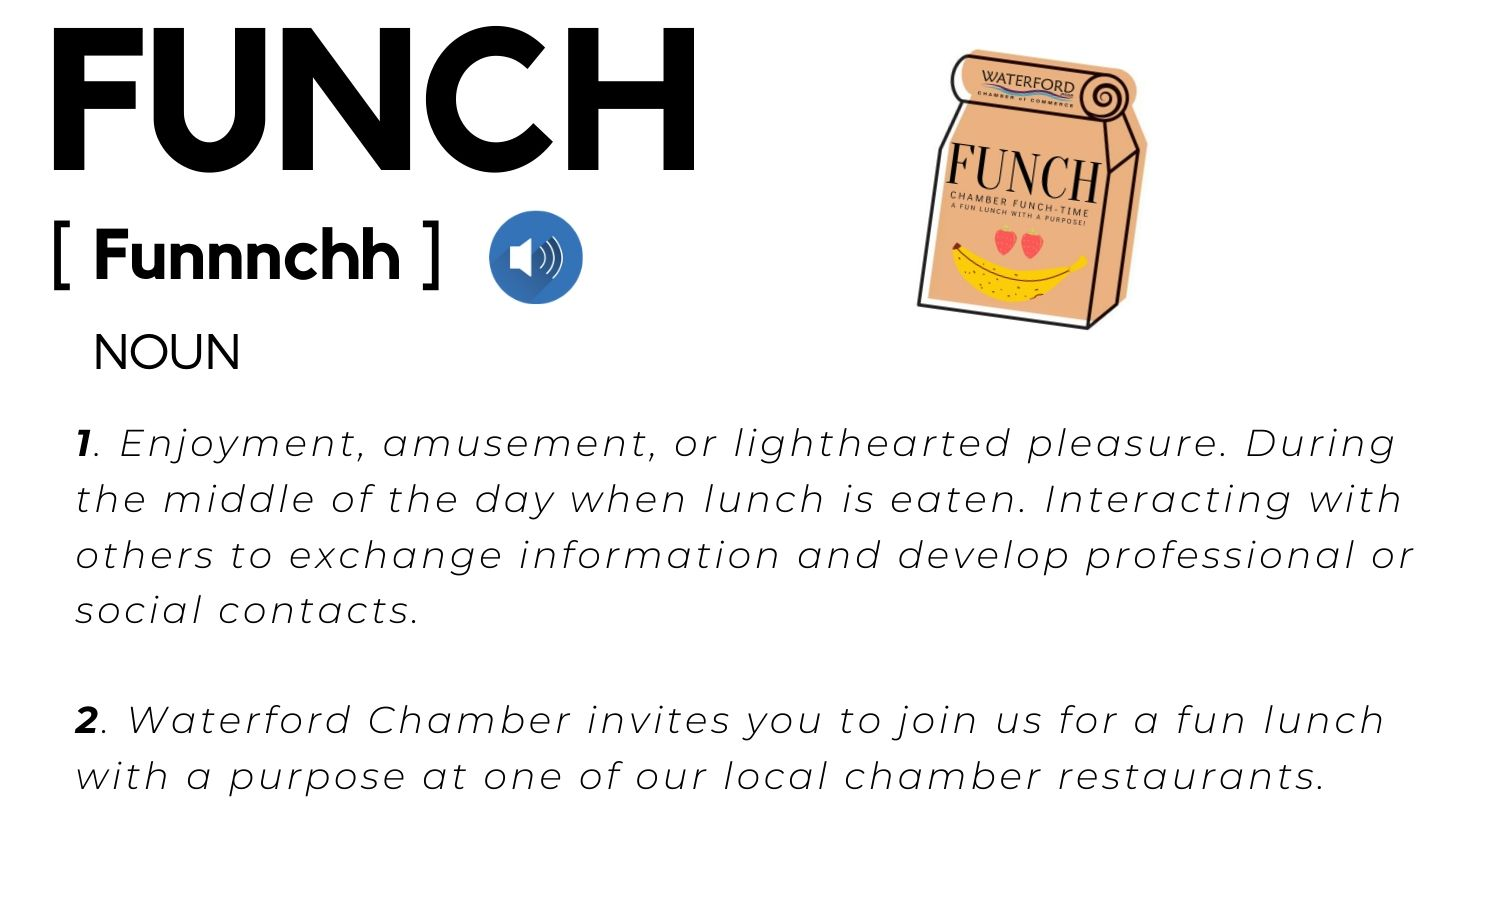 Funch definition graphic for web